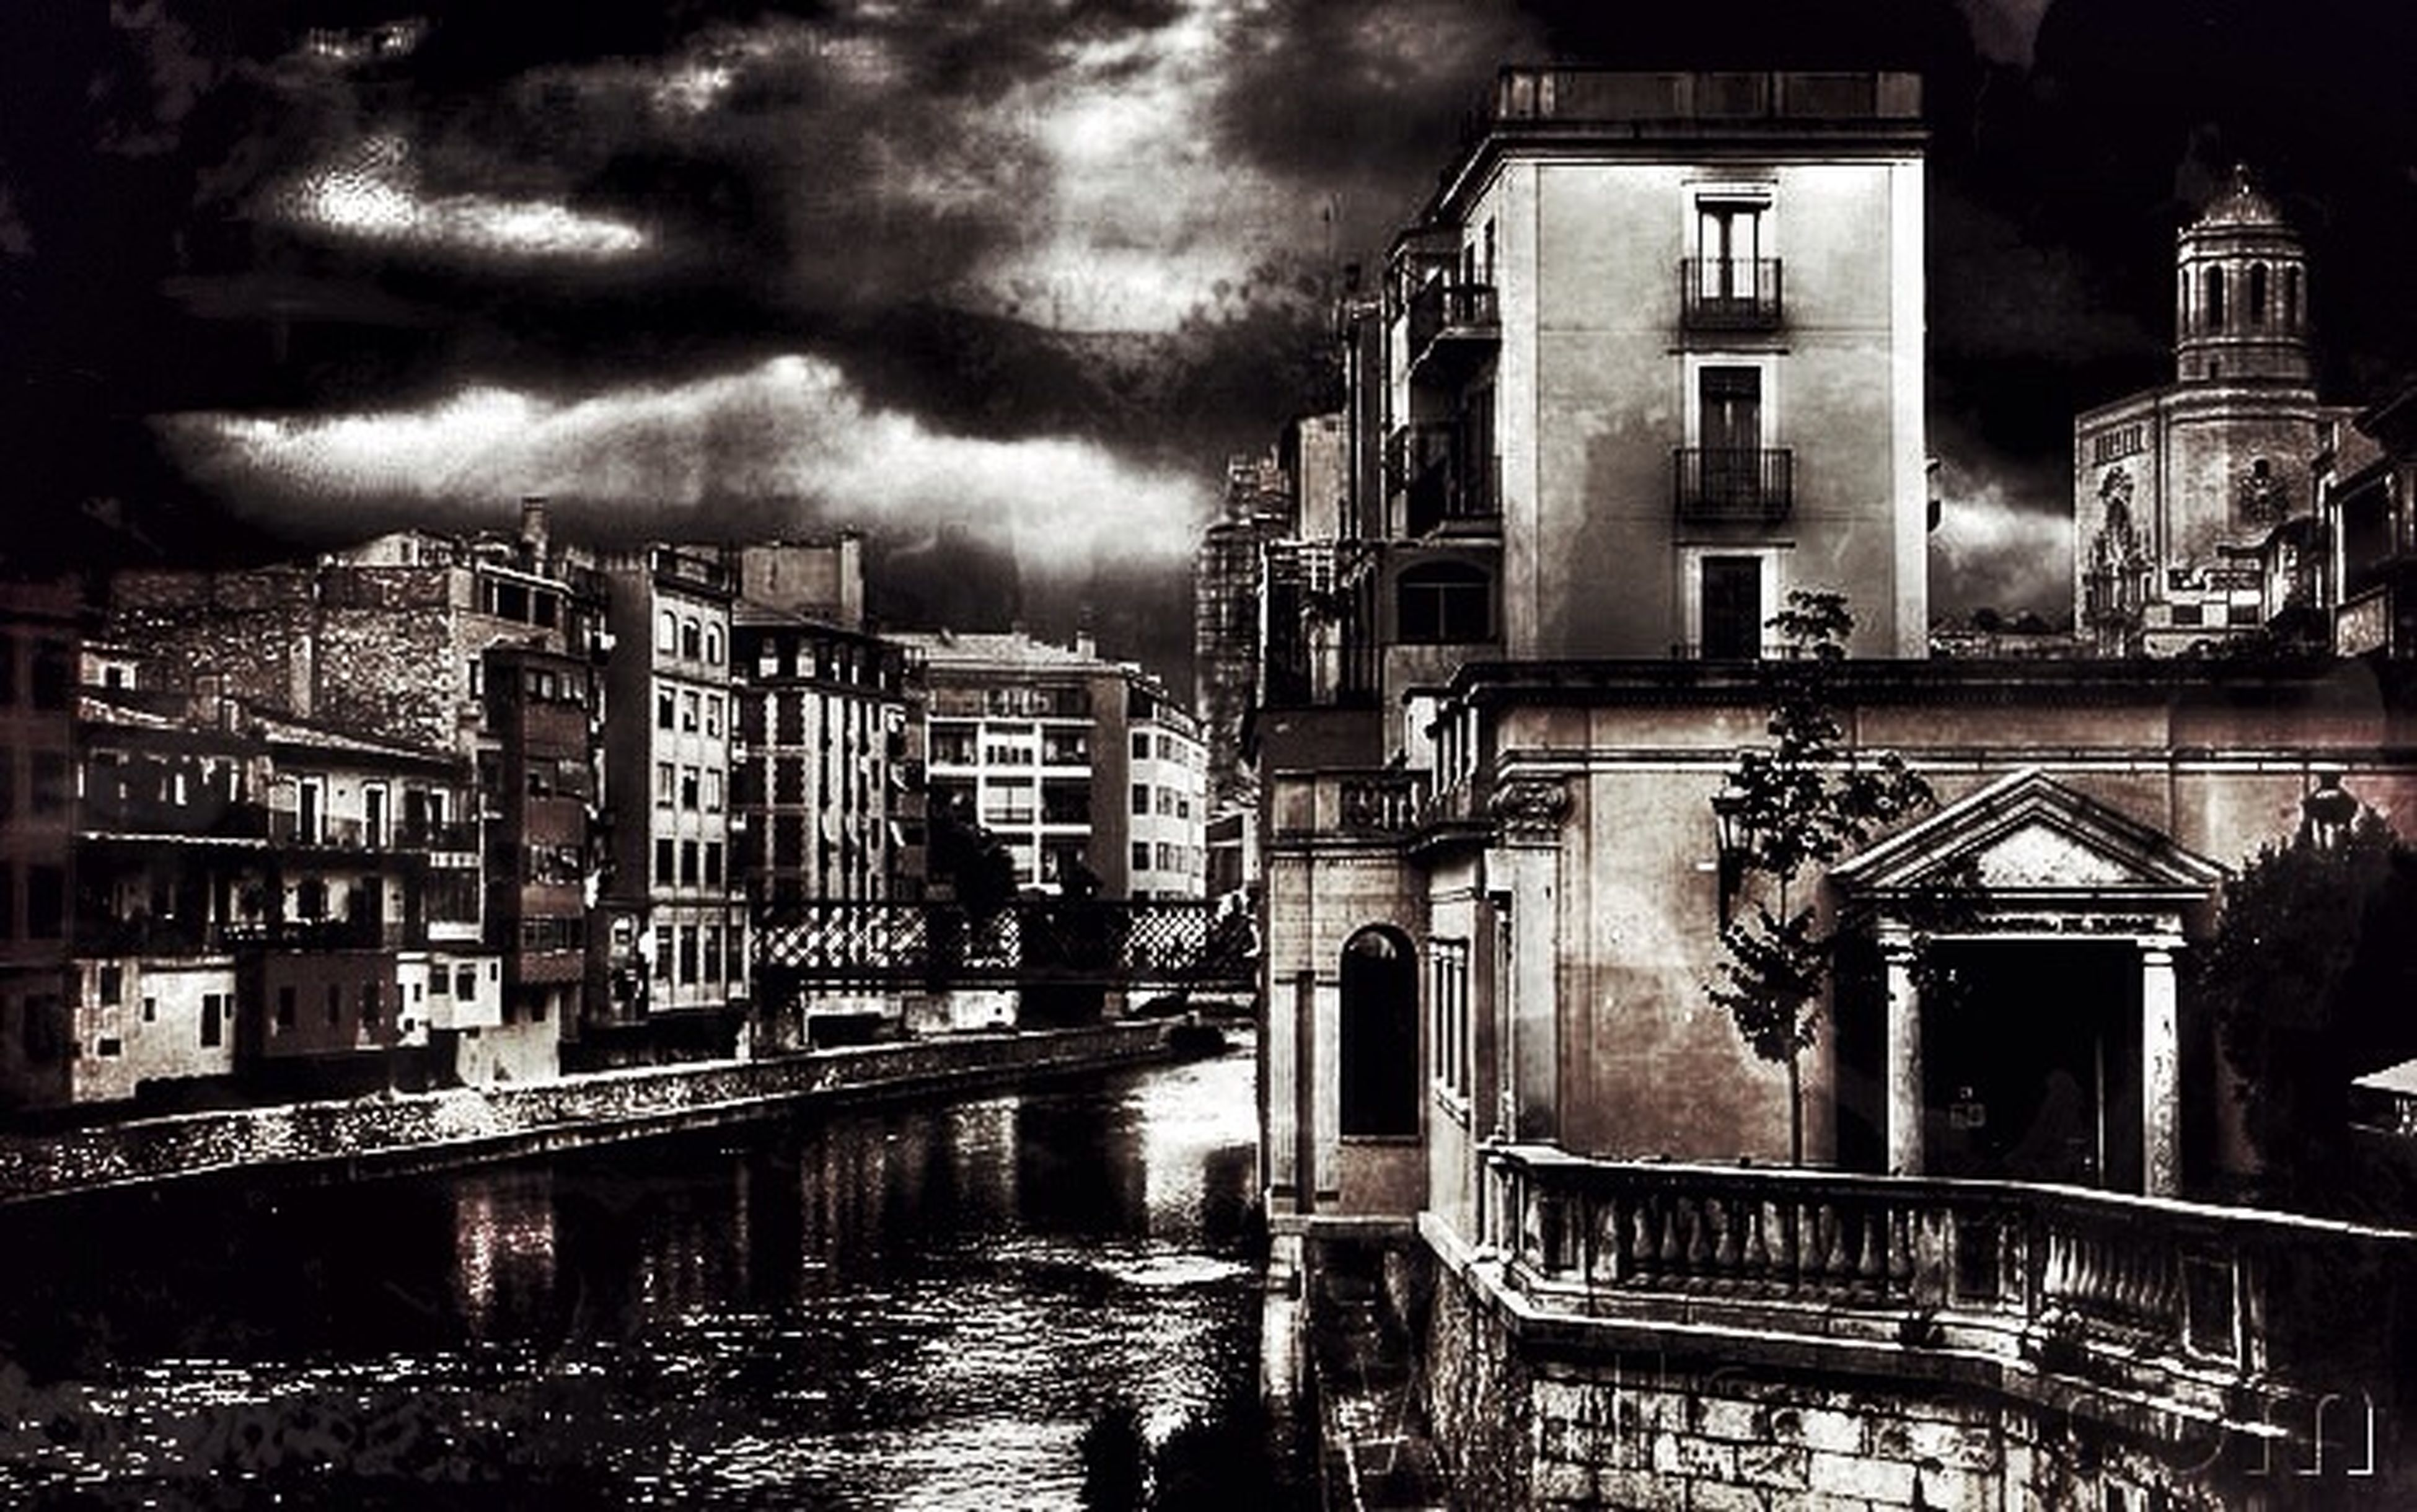 architecture, building exterior, built structure, water, sky, cloud - sky, residential structure, residential building, building, cloudy, reflection, waterfront, canal, house, city, weather, night, river, overcast, illuminated